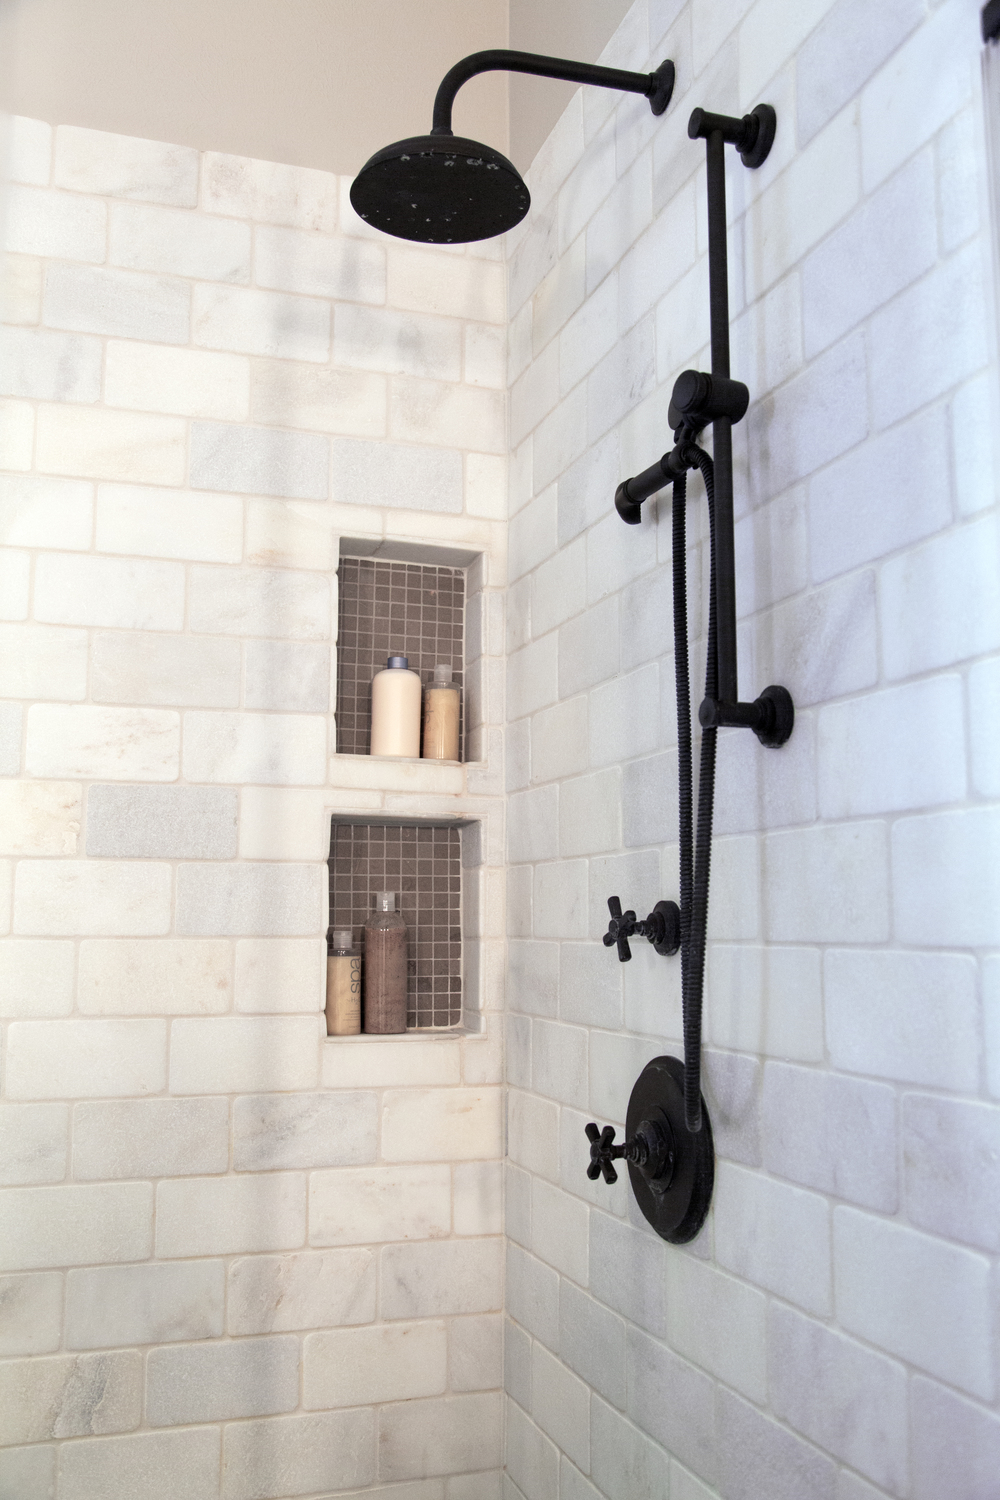 Master bathroom remodel, shower | Interior designer: Carla Aston - Photographer: Tori Aston http://ToriAston.com